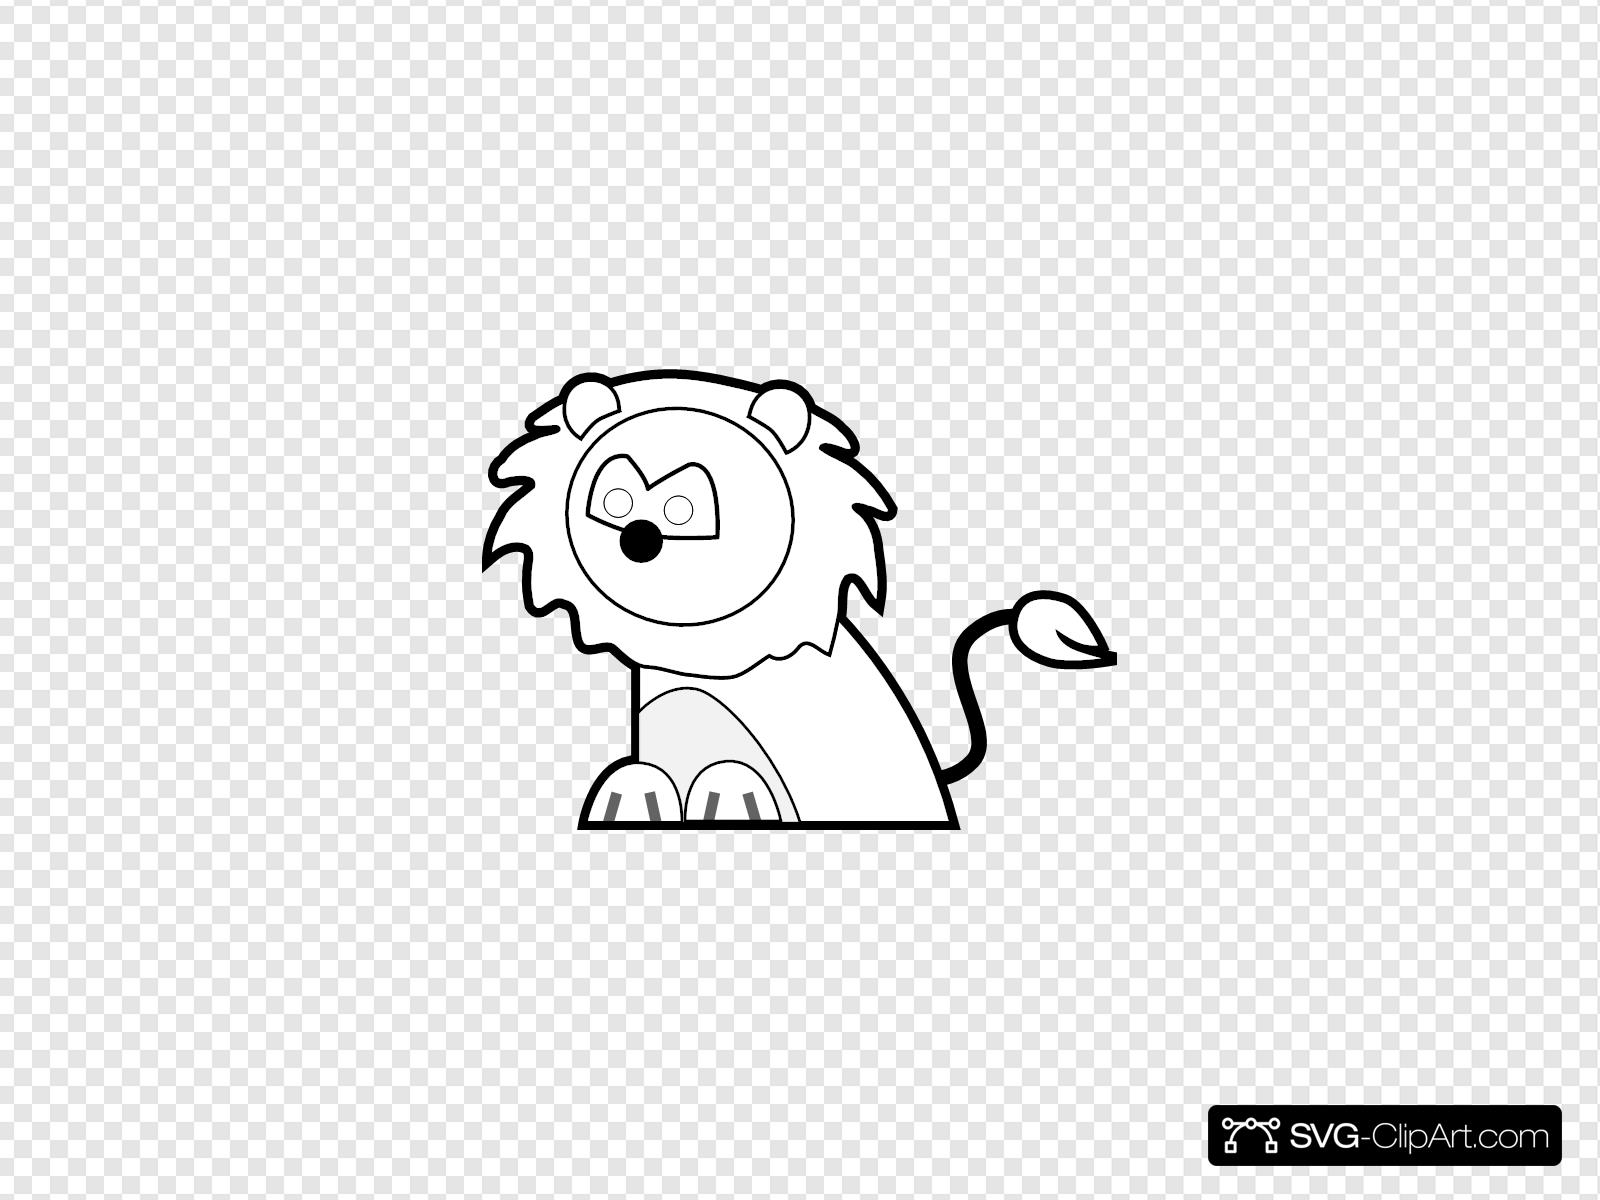 Black And White Lion Svg Vector Black And White Lion Clip Art Svg Clipart